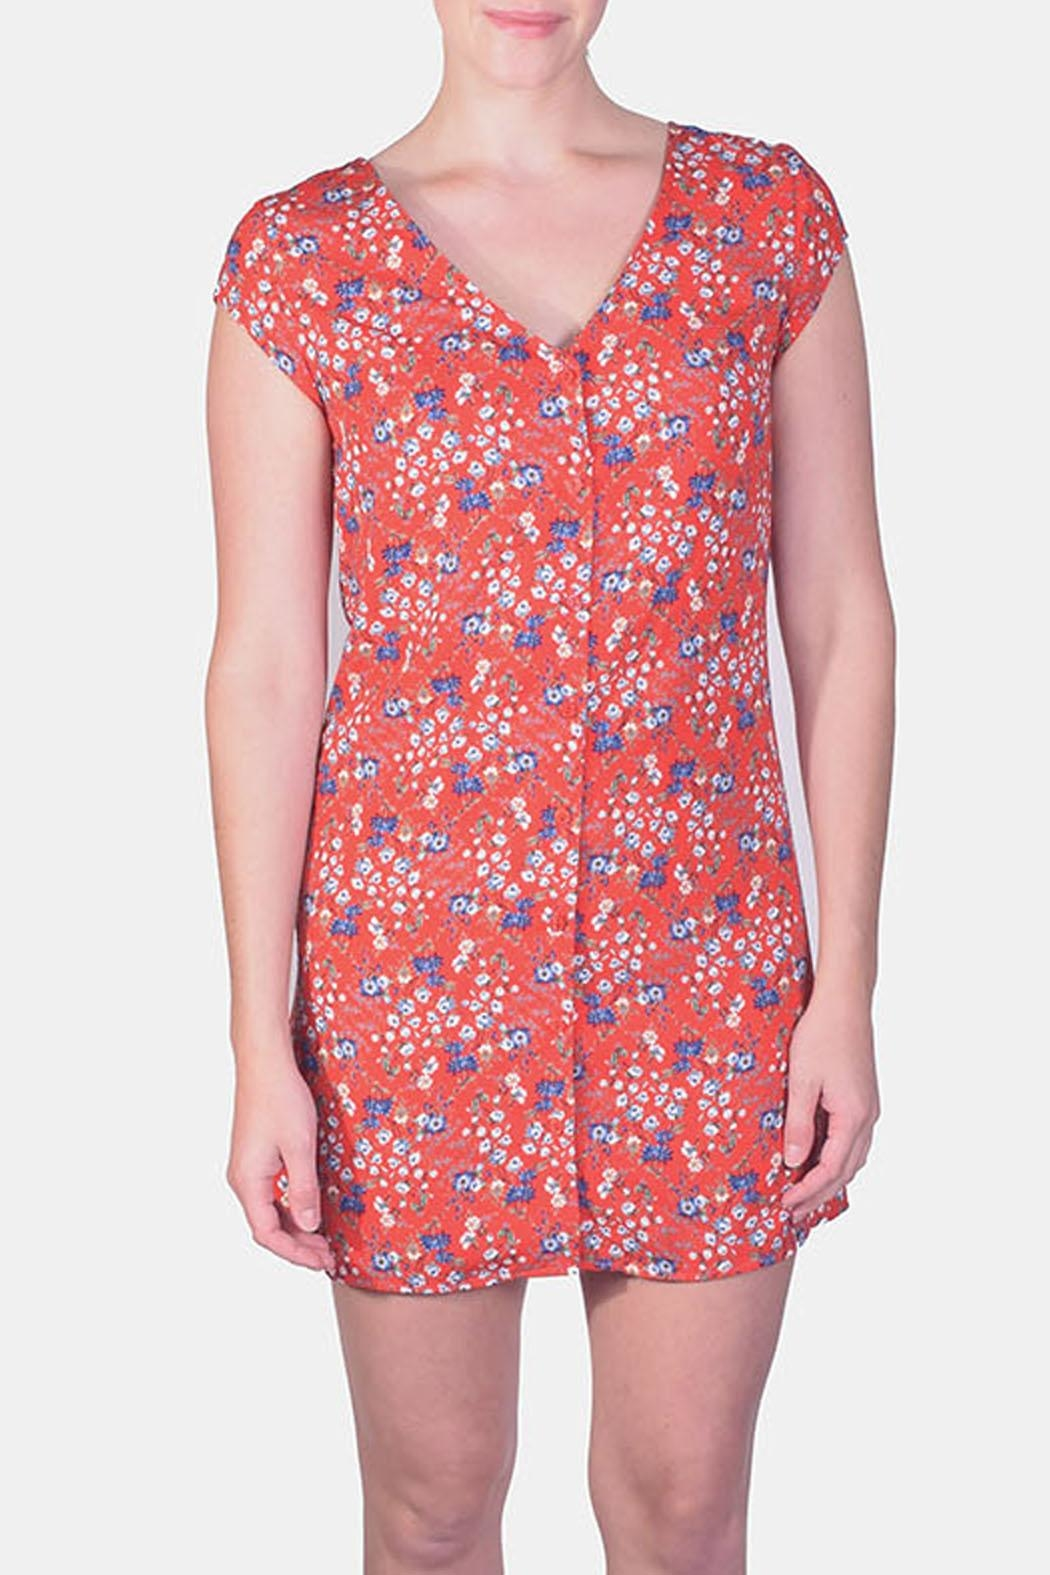 rokoko Picnic Floral Button-Down - Main Image